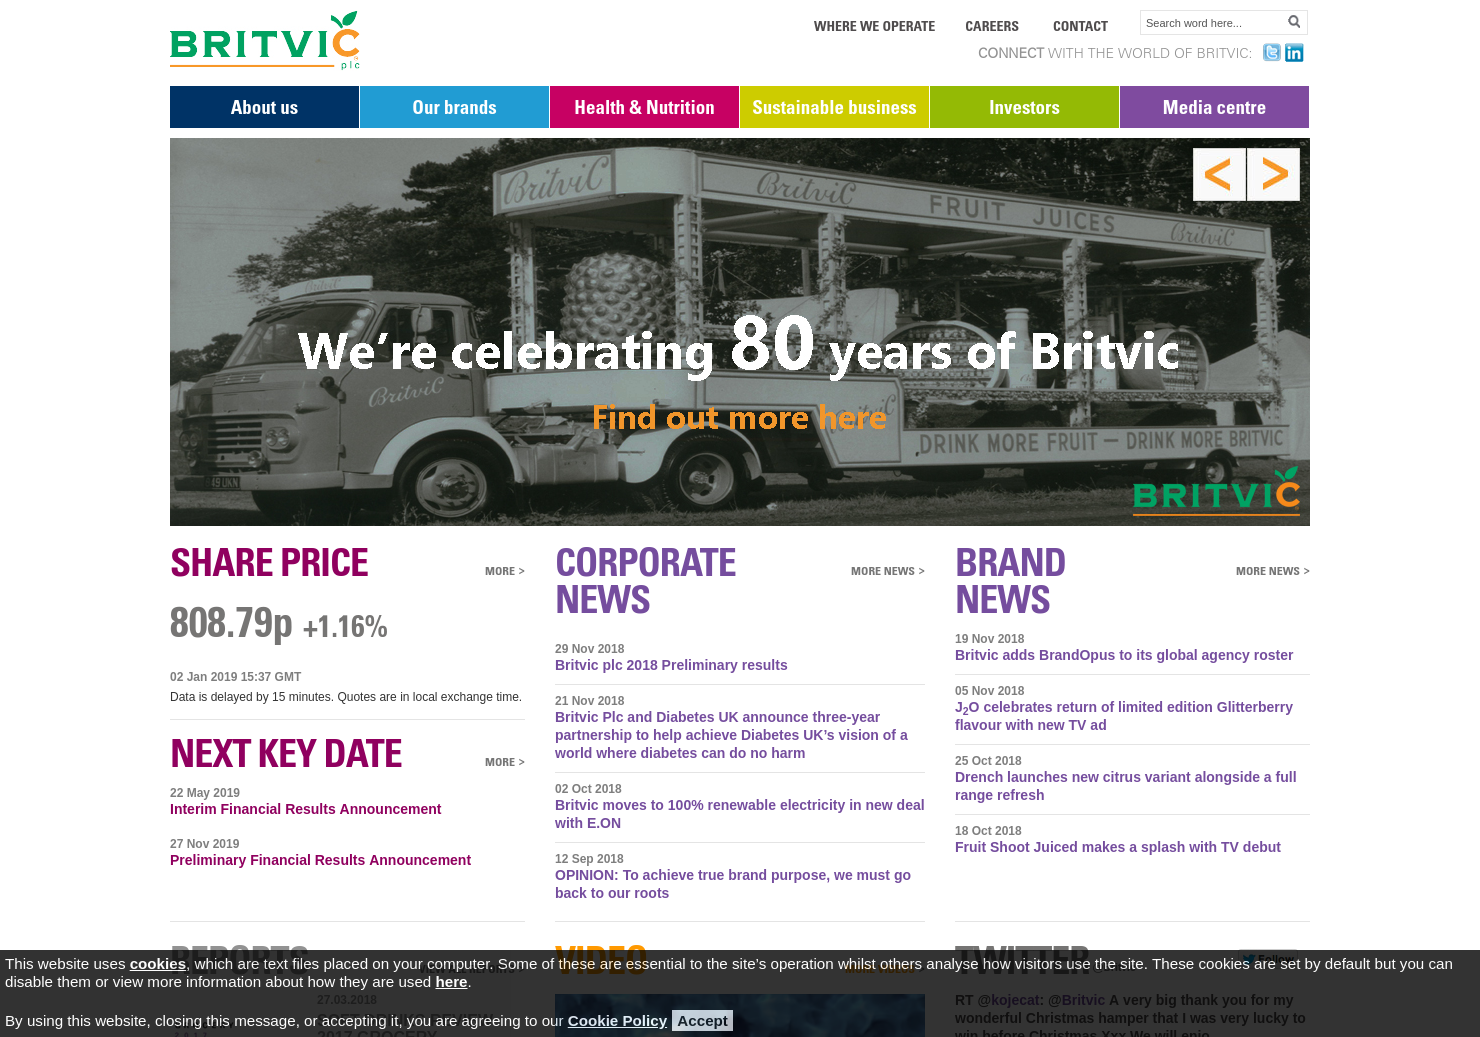 Britvic Home Page